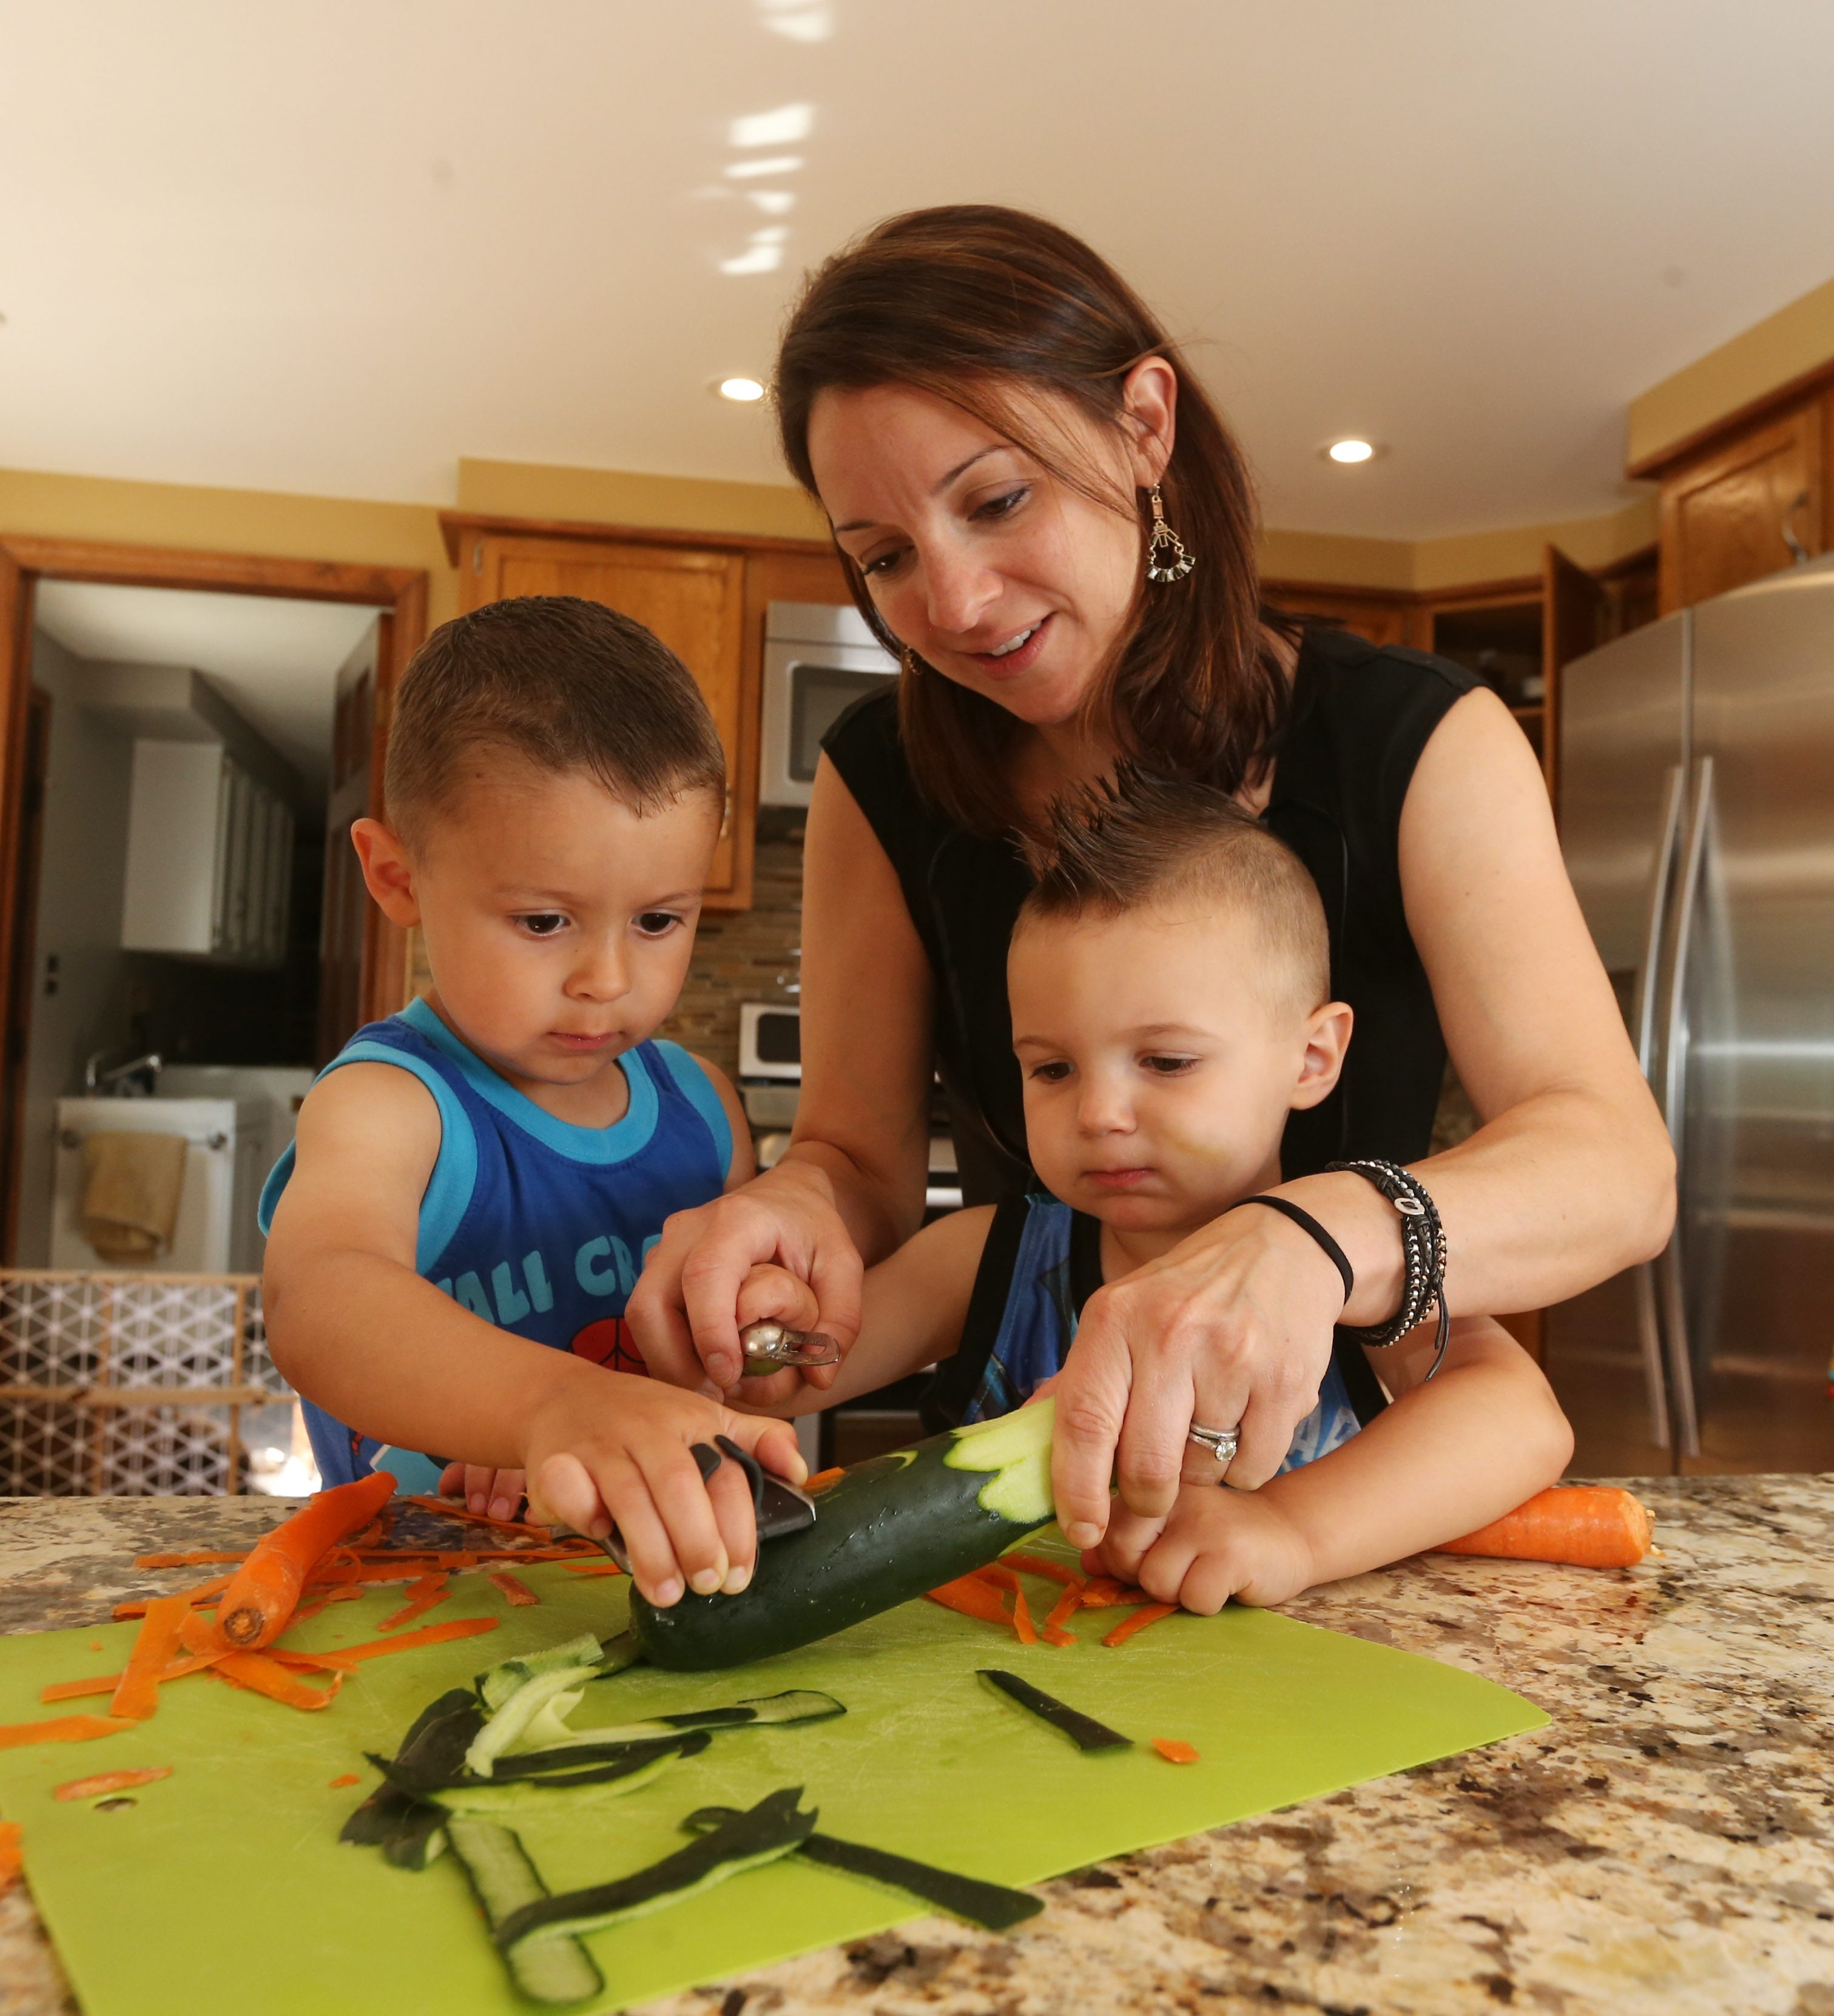 Josette Hickey, of Williamsville, involves her children in food preparation which helps to make them more enthusiastic about what they are eating. Corey, 4, left, and Garett, 2, help to peel carrots and a cucumber. They have their own stools for helping at the kitchen counter.